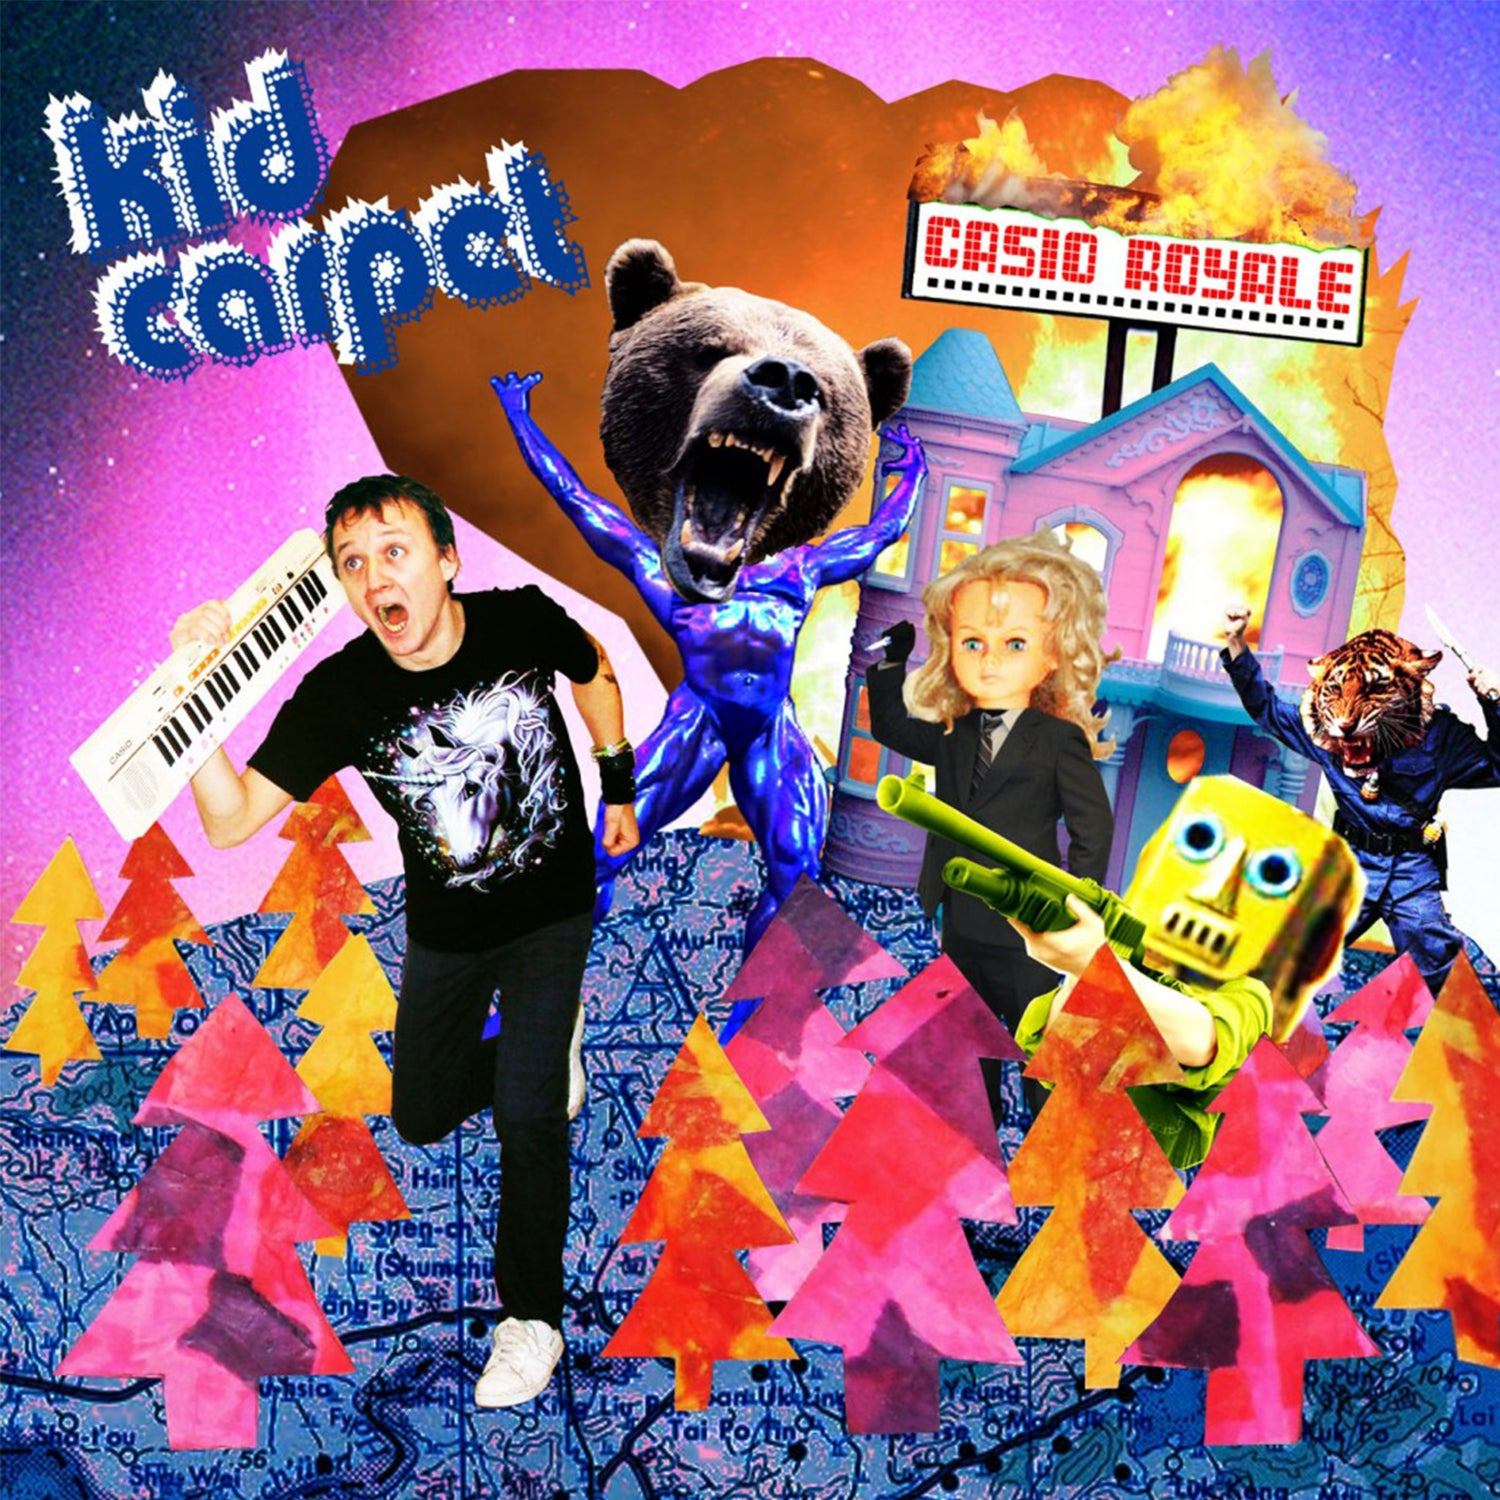 Image of Kid Carpet - Casio Royale